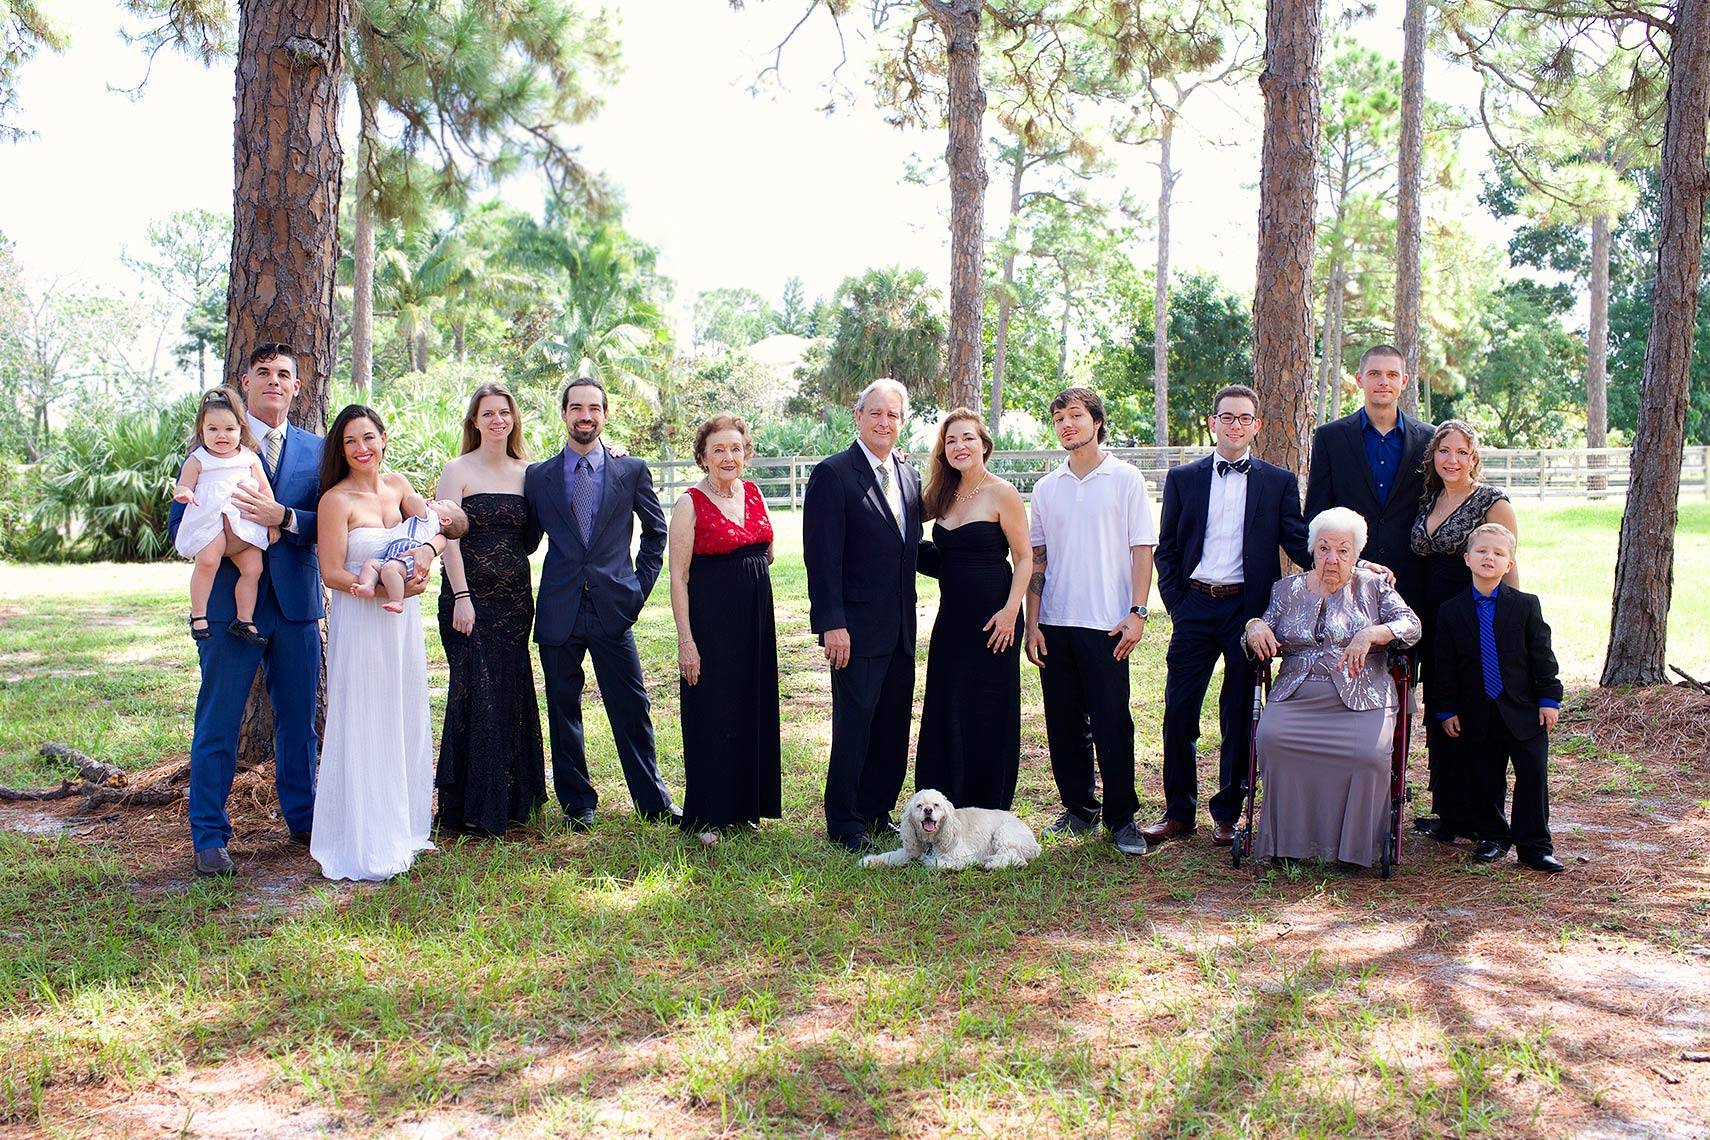 family-reunion-photography-Stuart,-Florida-Big-Fish-Studios_Robert-Holland